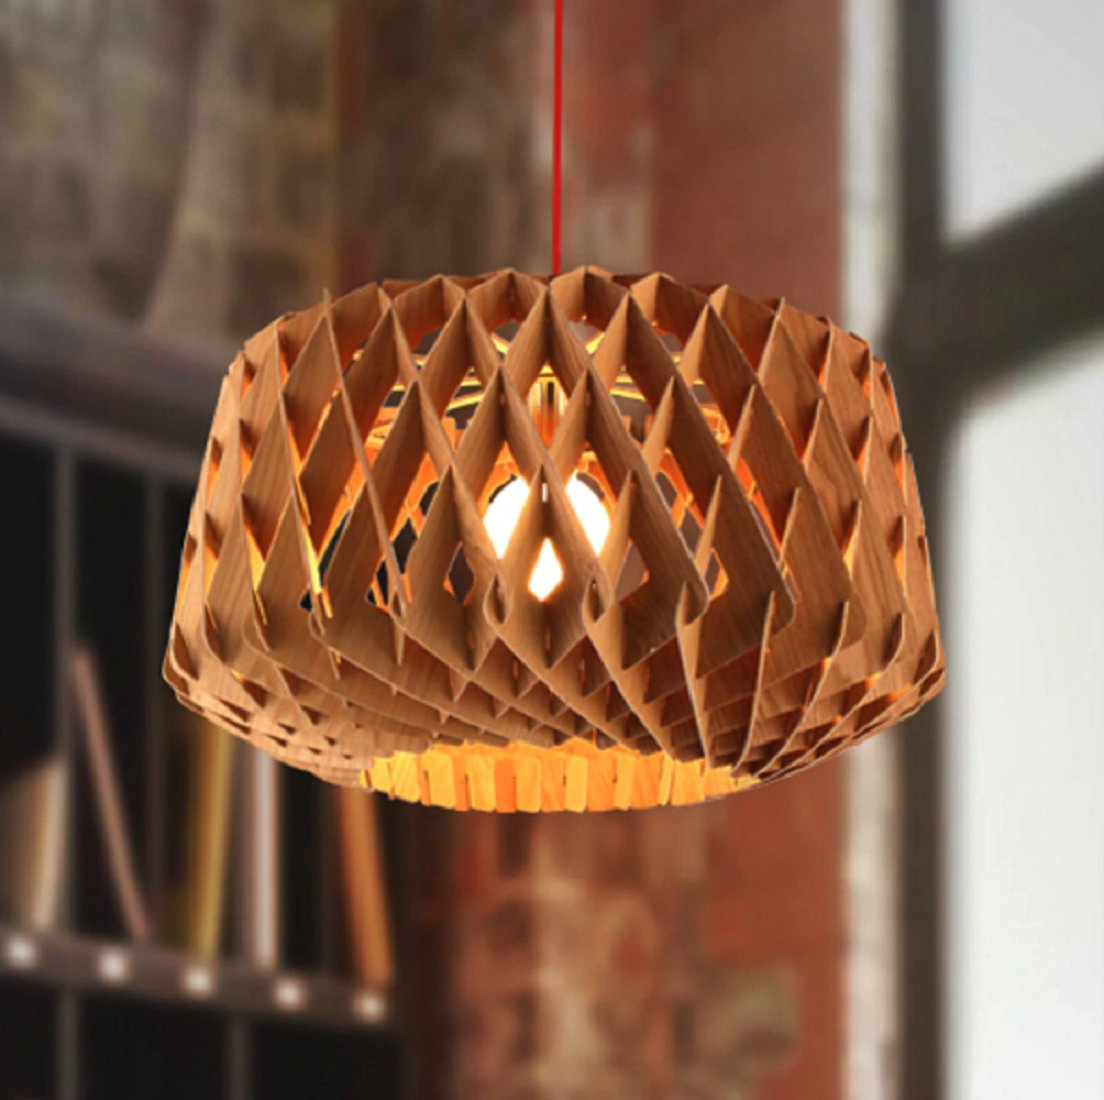 Widely Used Melora 1 Light Single Geometric Pendants Inside Calfee Wooden 1 Light Geometric Pendant (View 24 of 25)